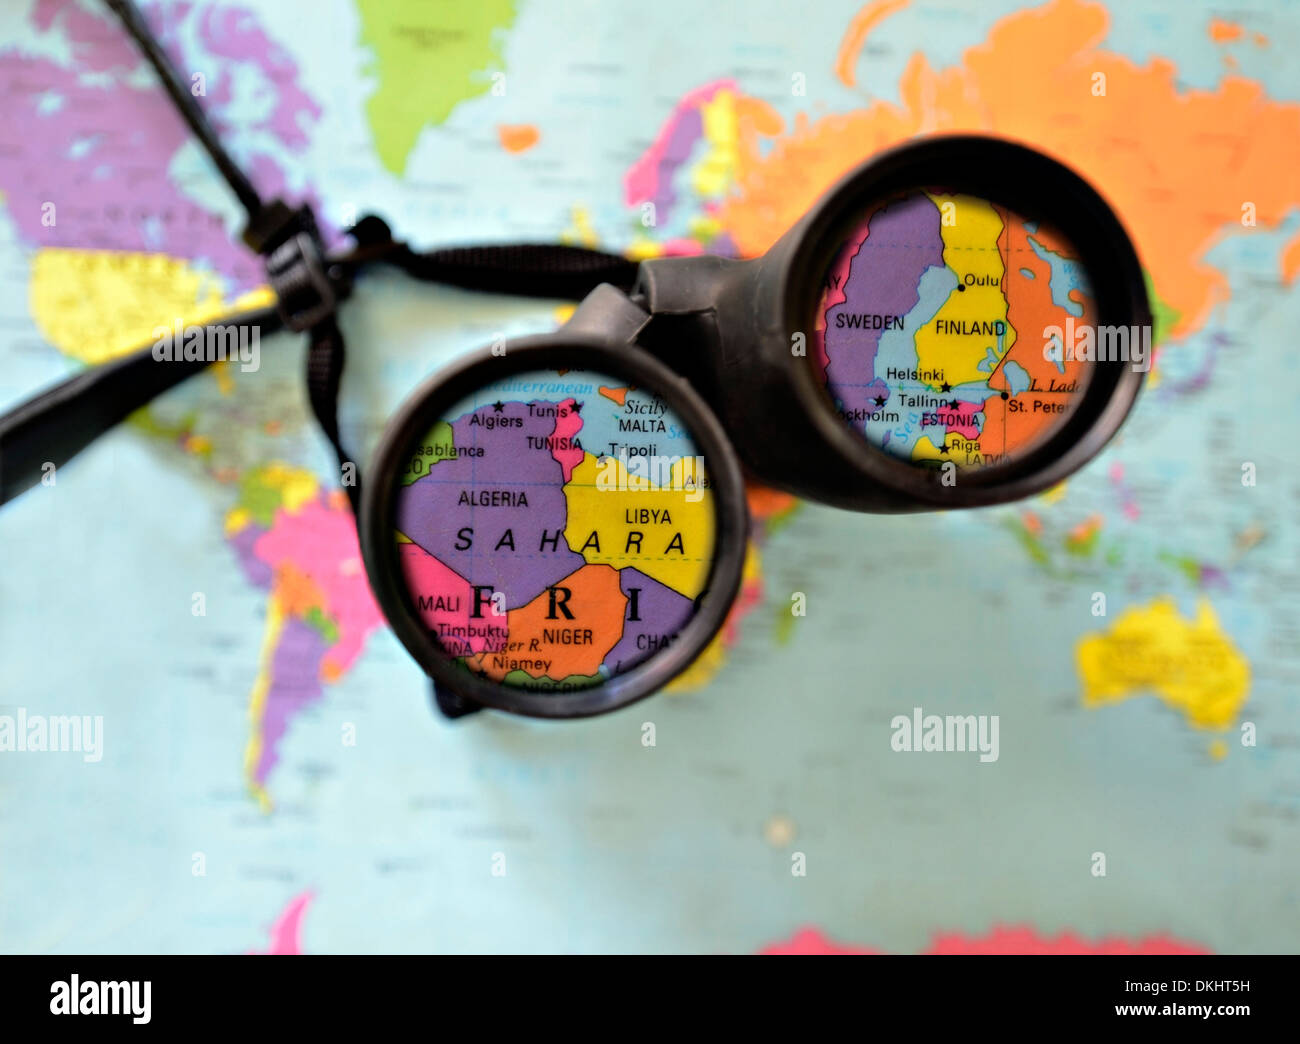 There is a global map of world finland stock photo royalty free a pair of binoculars on top of a world map countries highlighted in the lens gumiabroncs Image collections